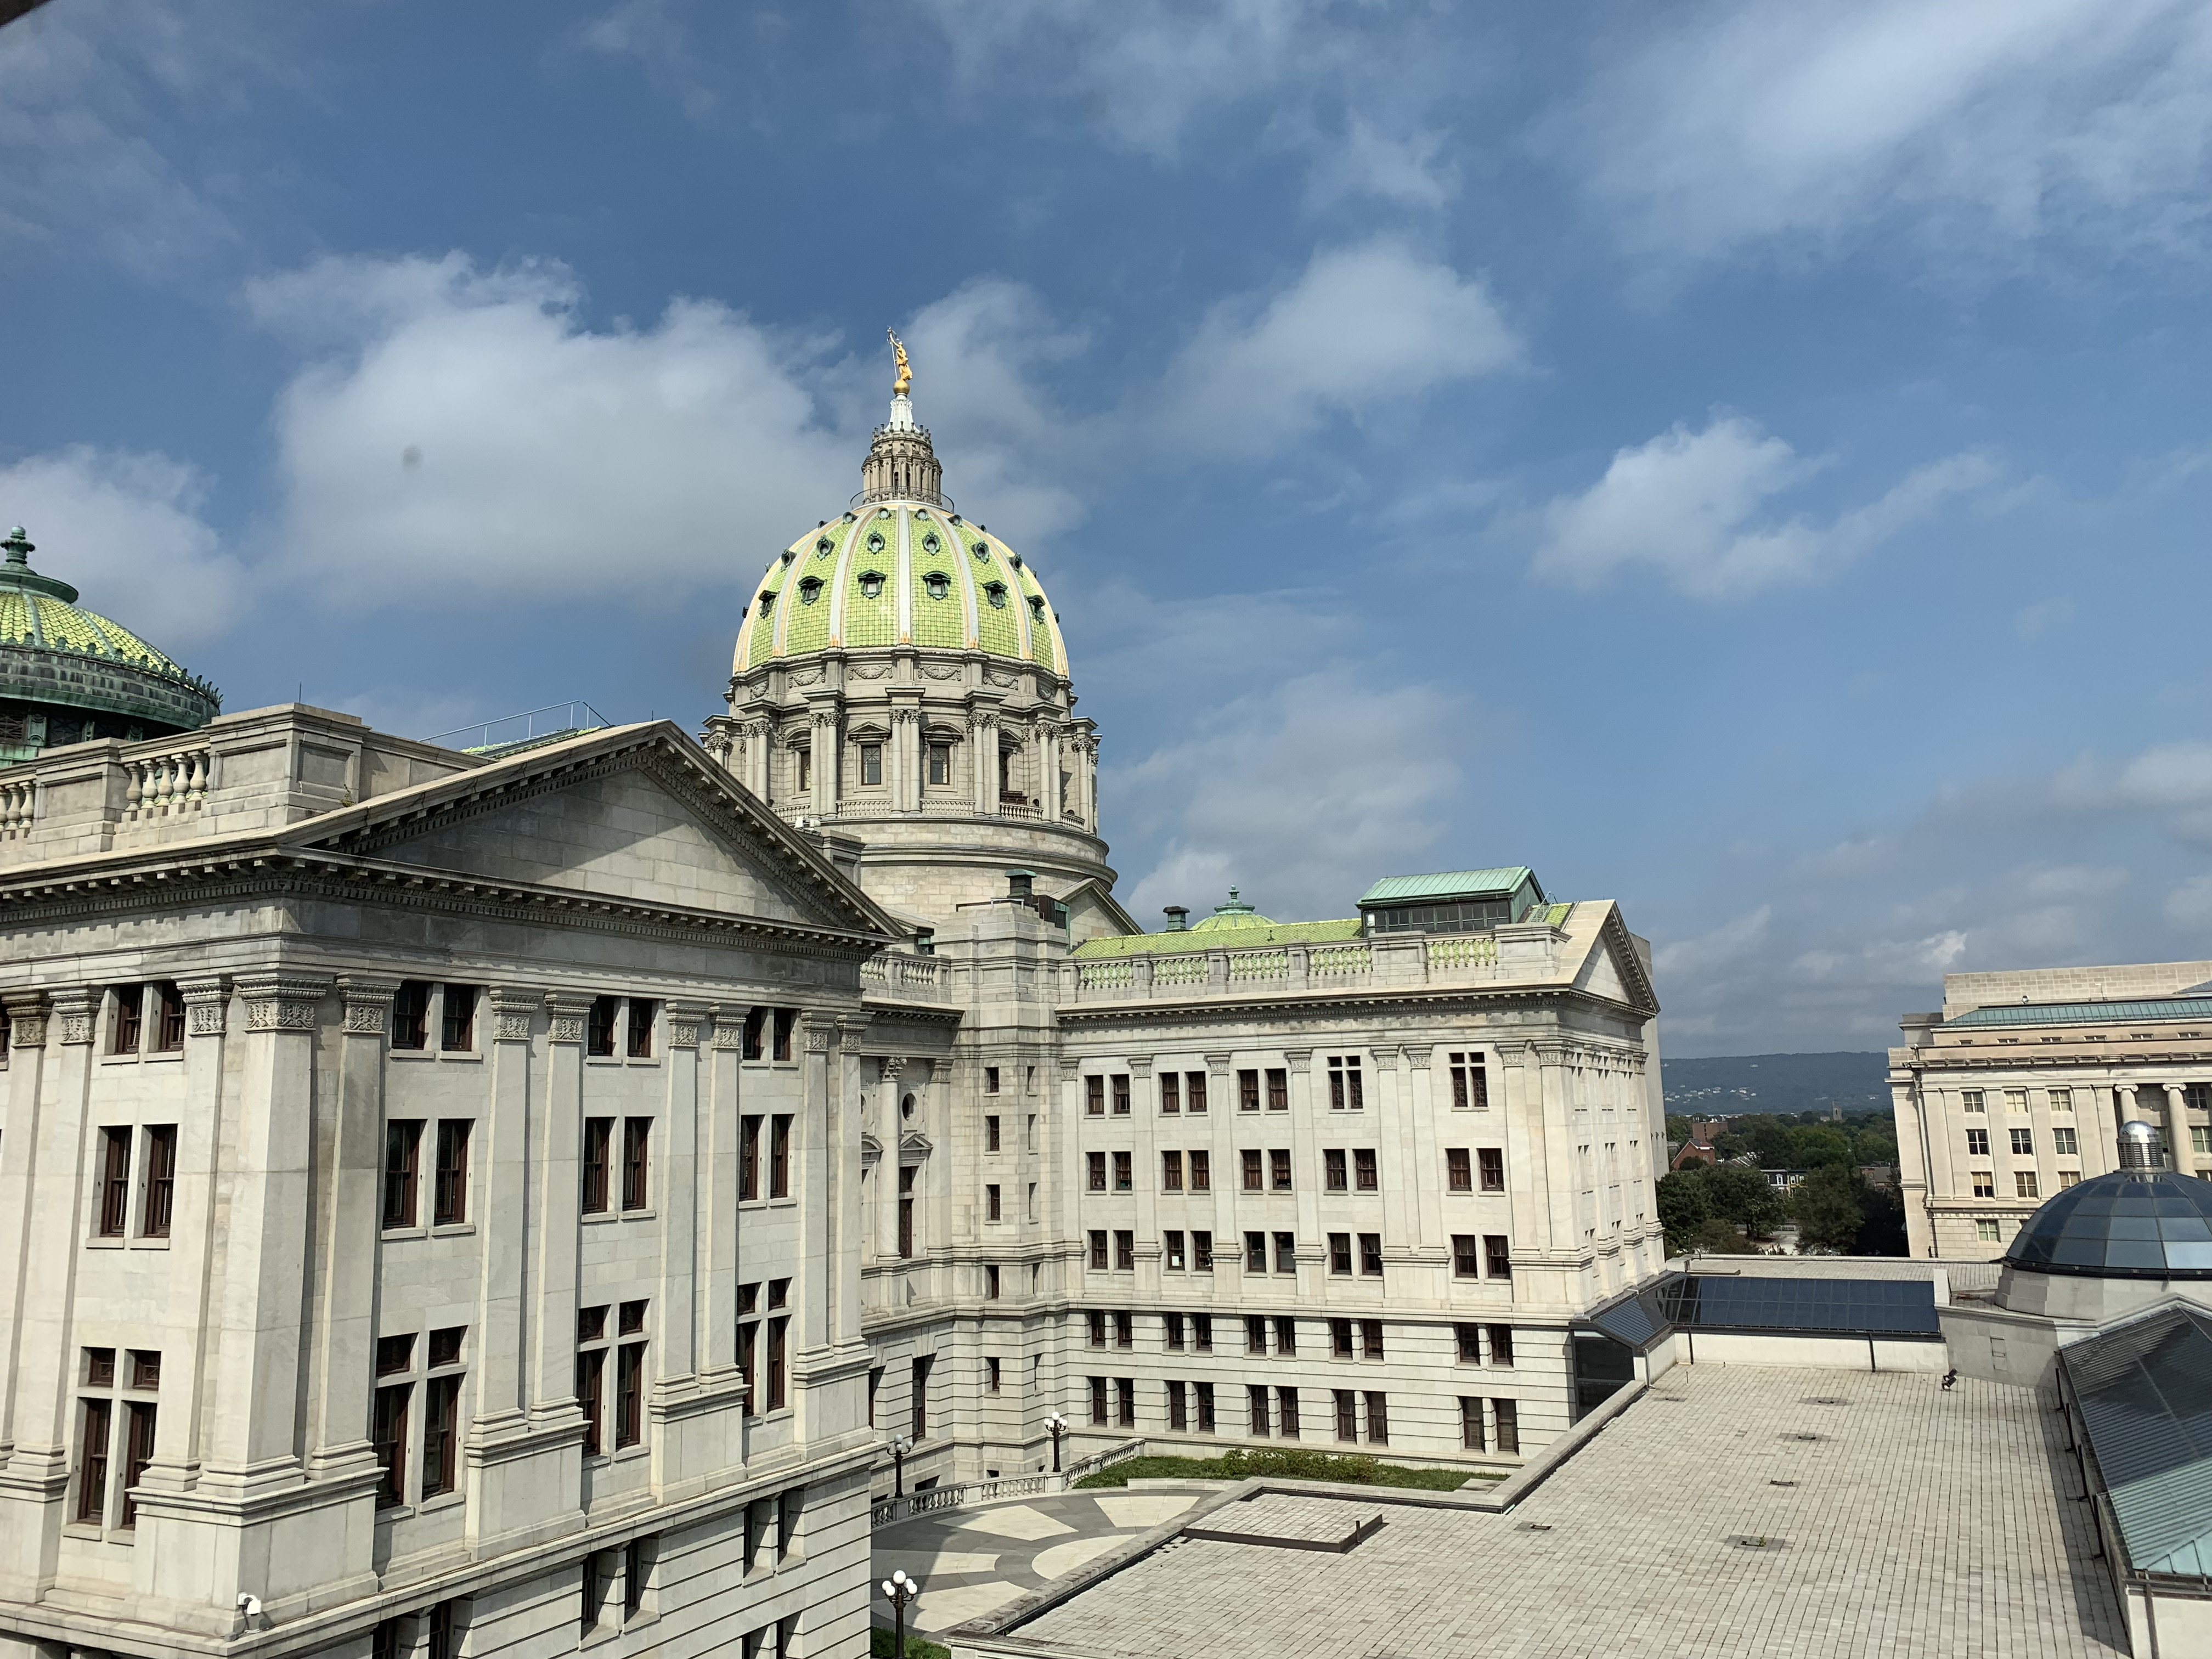 No additional buyout offers in the works for Pa. state government employees